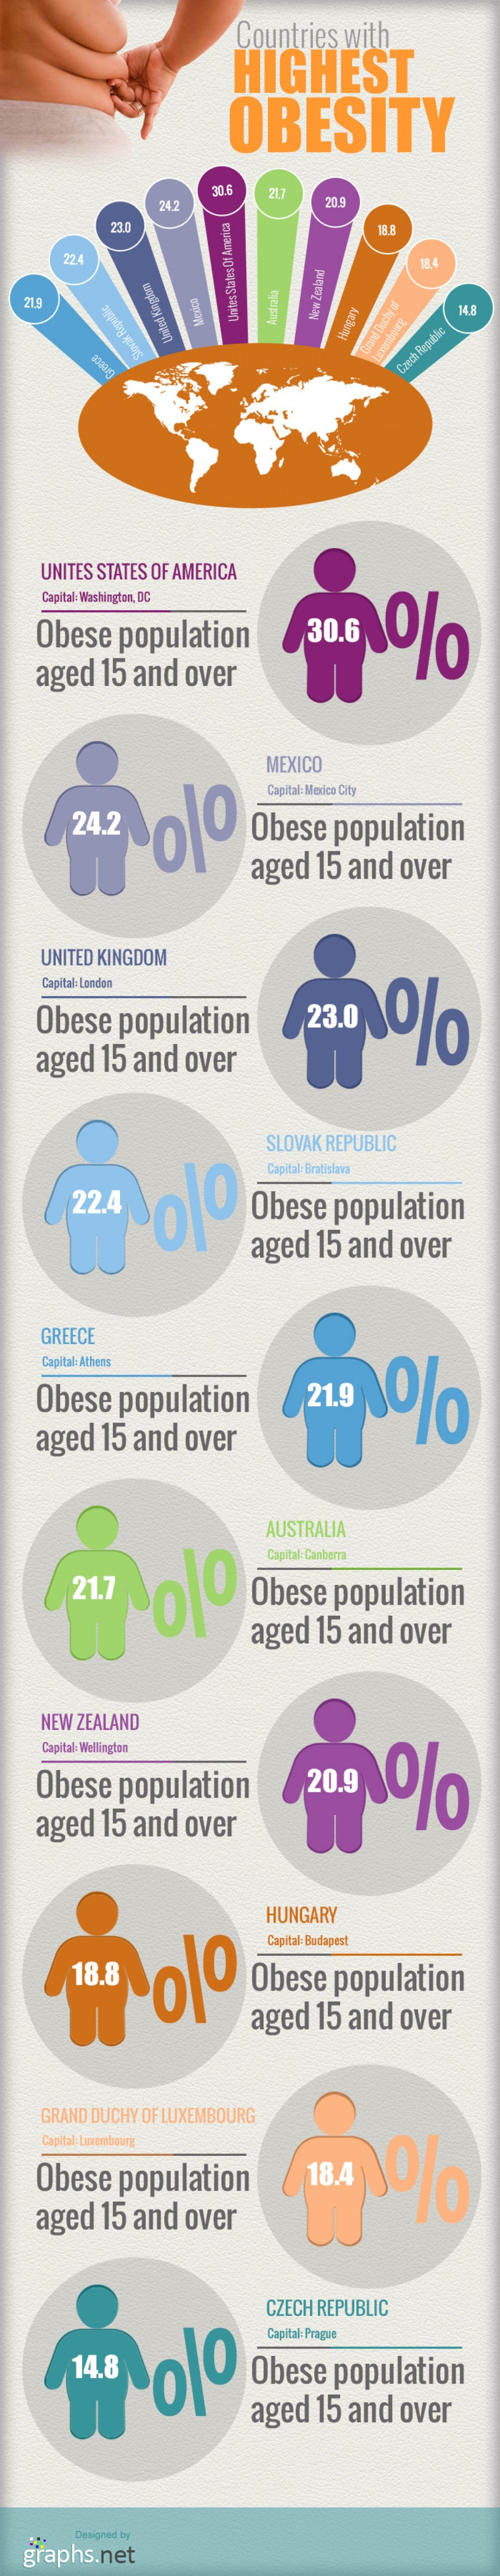 19. Countries with Highest Obesity